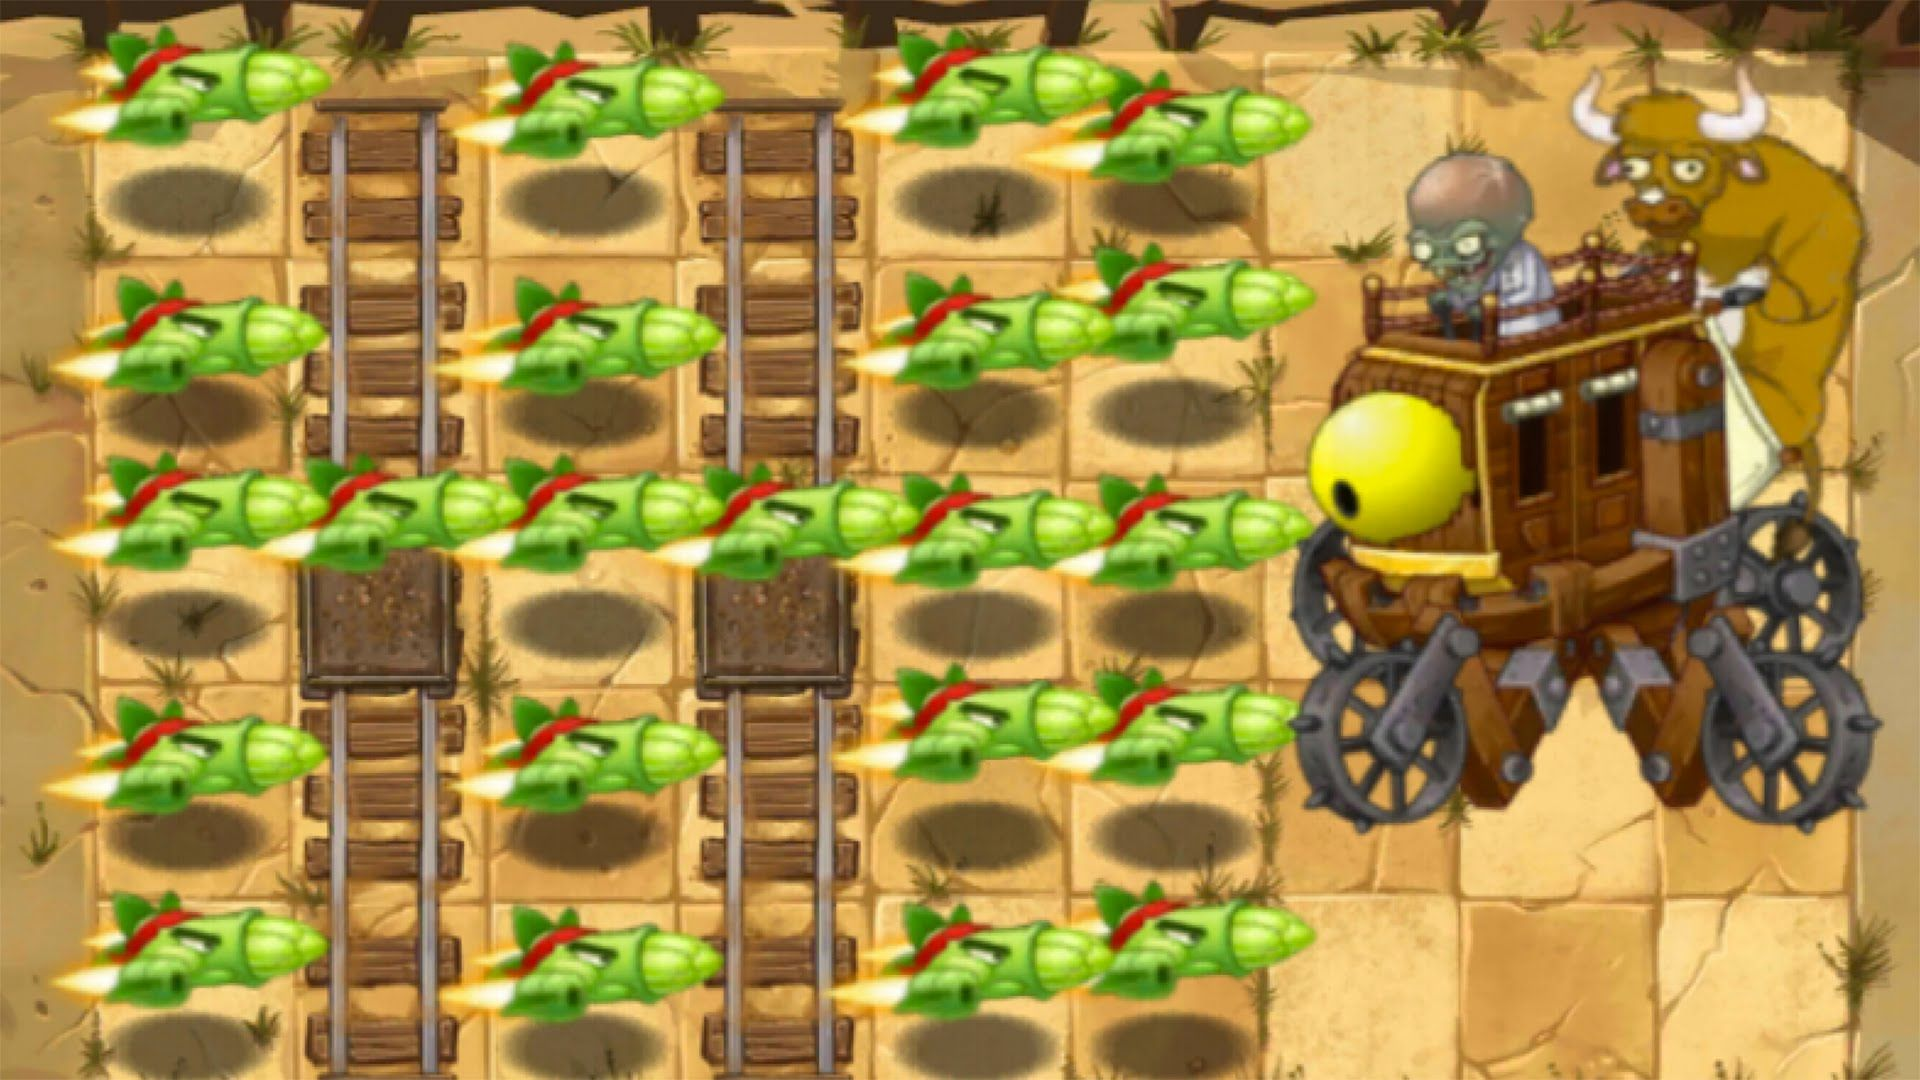 Zen Garten Plants Vs Zombies Zombie Attack Zen Garden Plants Vs Zombies Hack Tntgaming